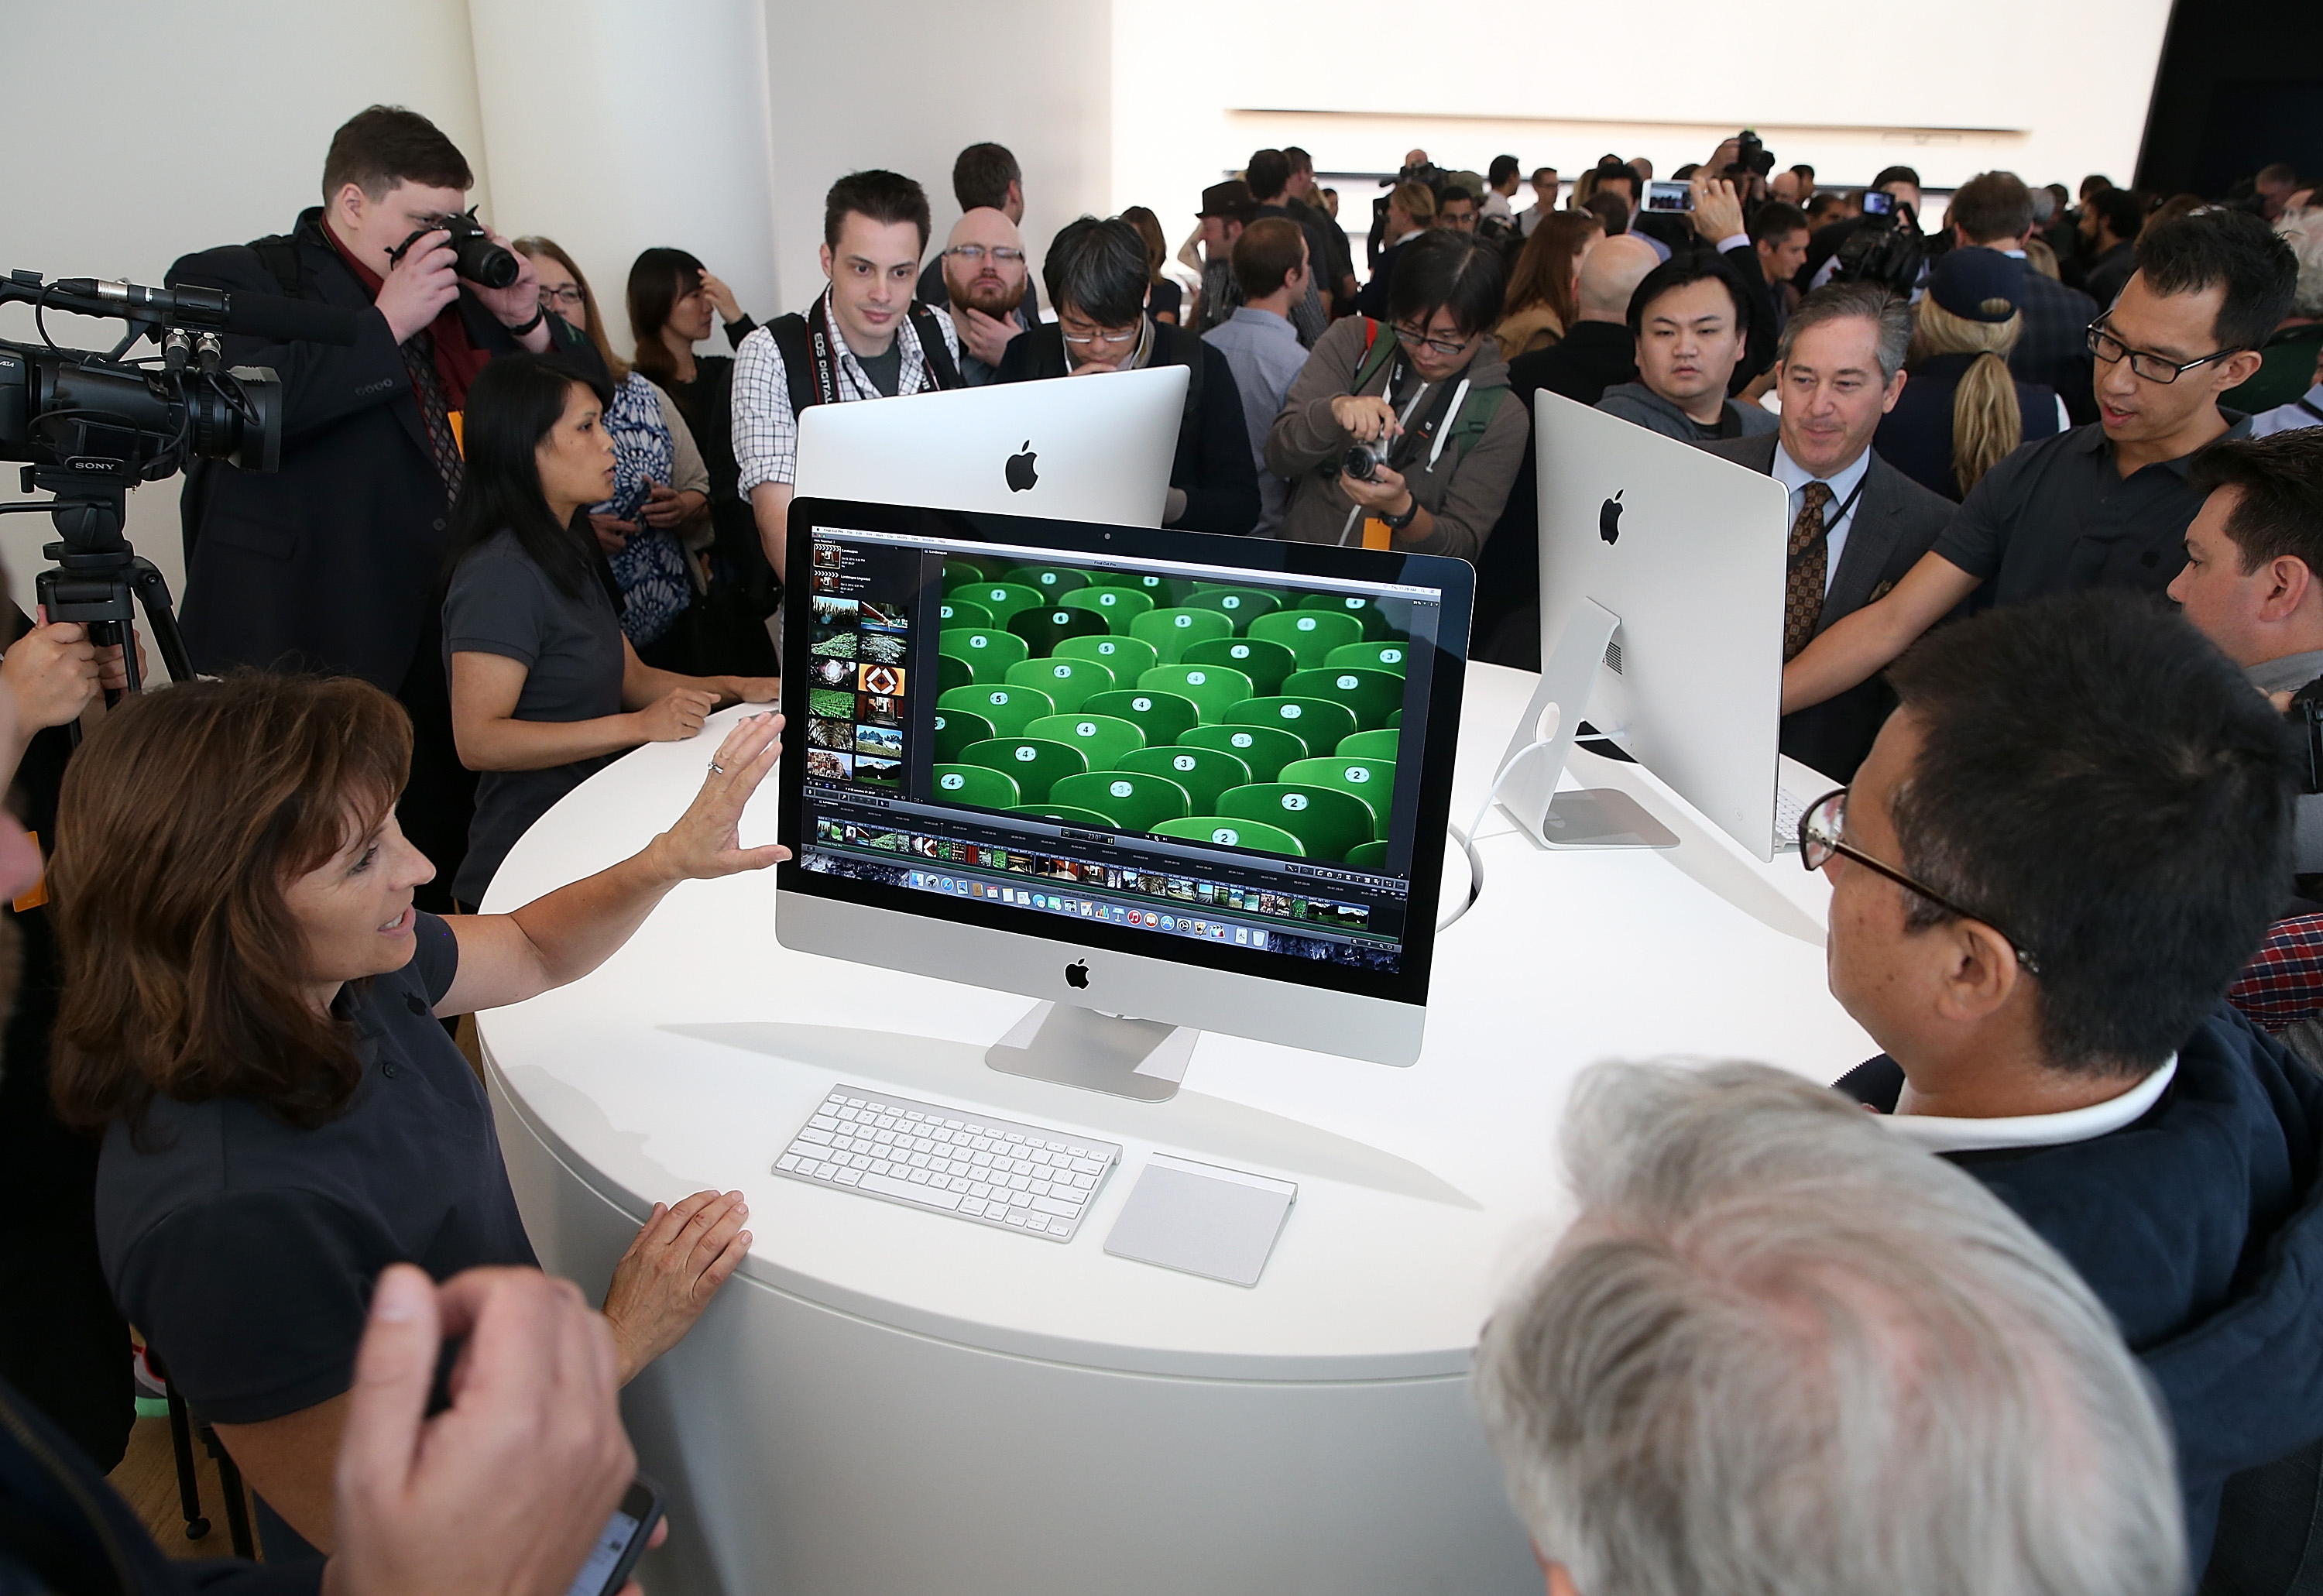 Attendees inspect the new 27 inch iMac with 5K Retina display during an Apple special event on October 16, 2014 in Cupertino, California.